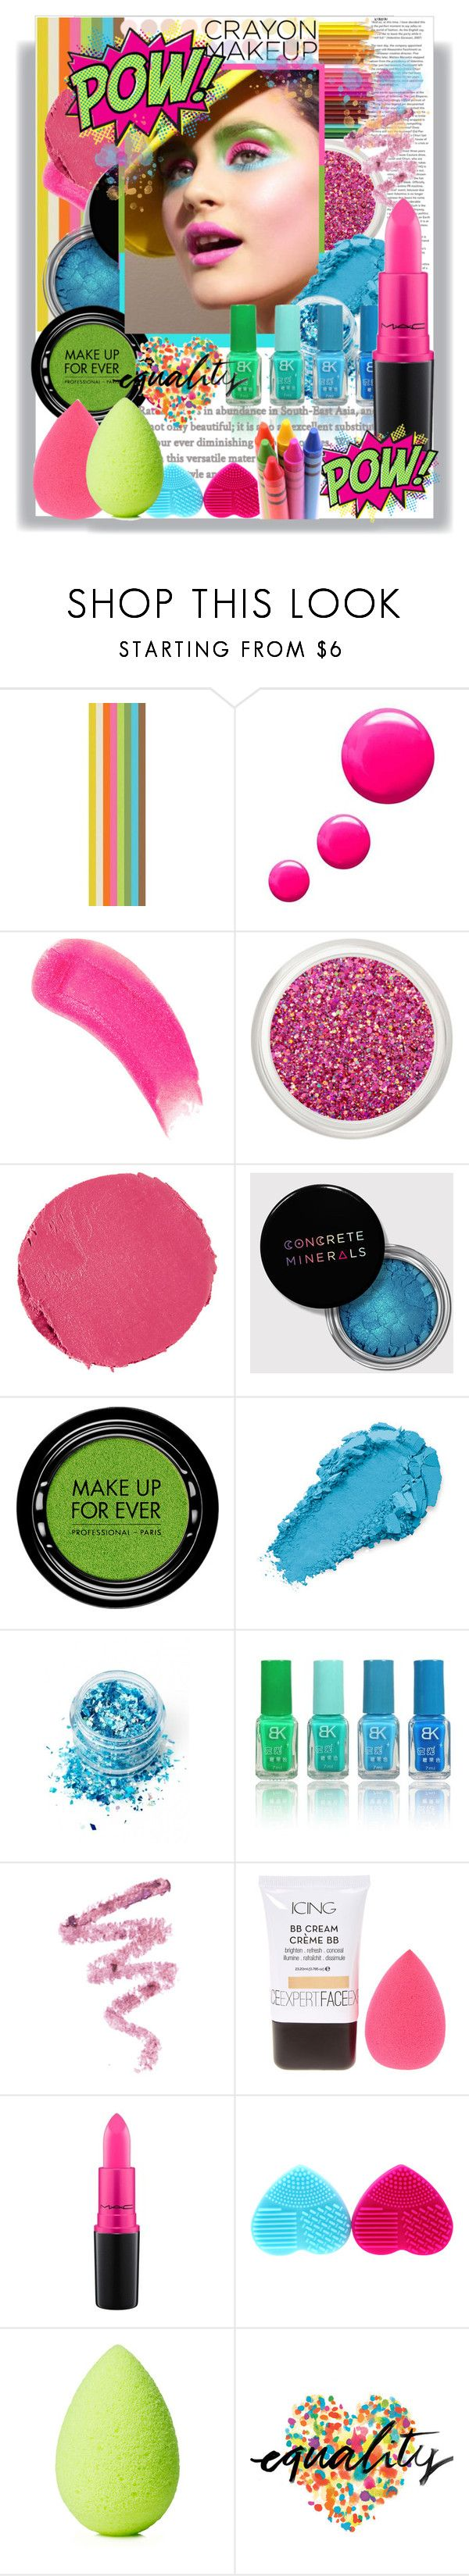 """CRAYON MAKEUP COLOR"" by licethfashion ❤ liked on Polyvore featuring beauty, Topshop, Sisley, Marc Jacobs, MAKE UP FOR EVER, In Your Dreams, Cynthia Rowley, MAC Cosmetics, beautyblender and Retrò"